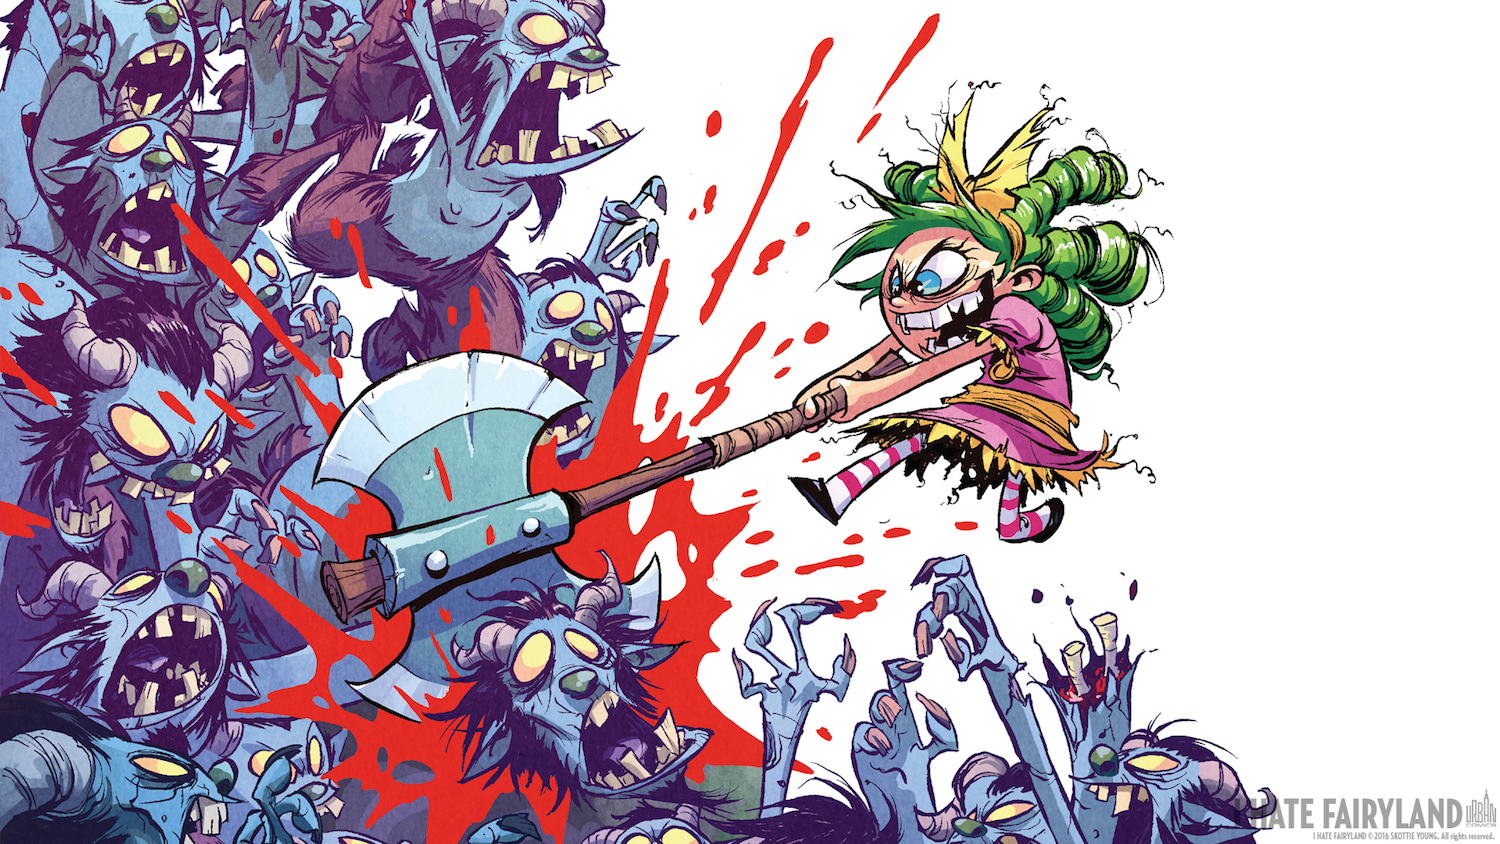 I Hate Fairyland Intégrale Livre 1 - Skottie Young - Urban Comics